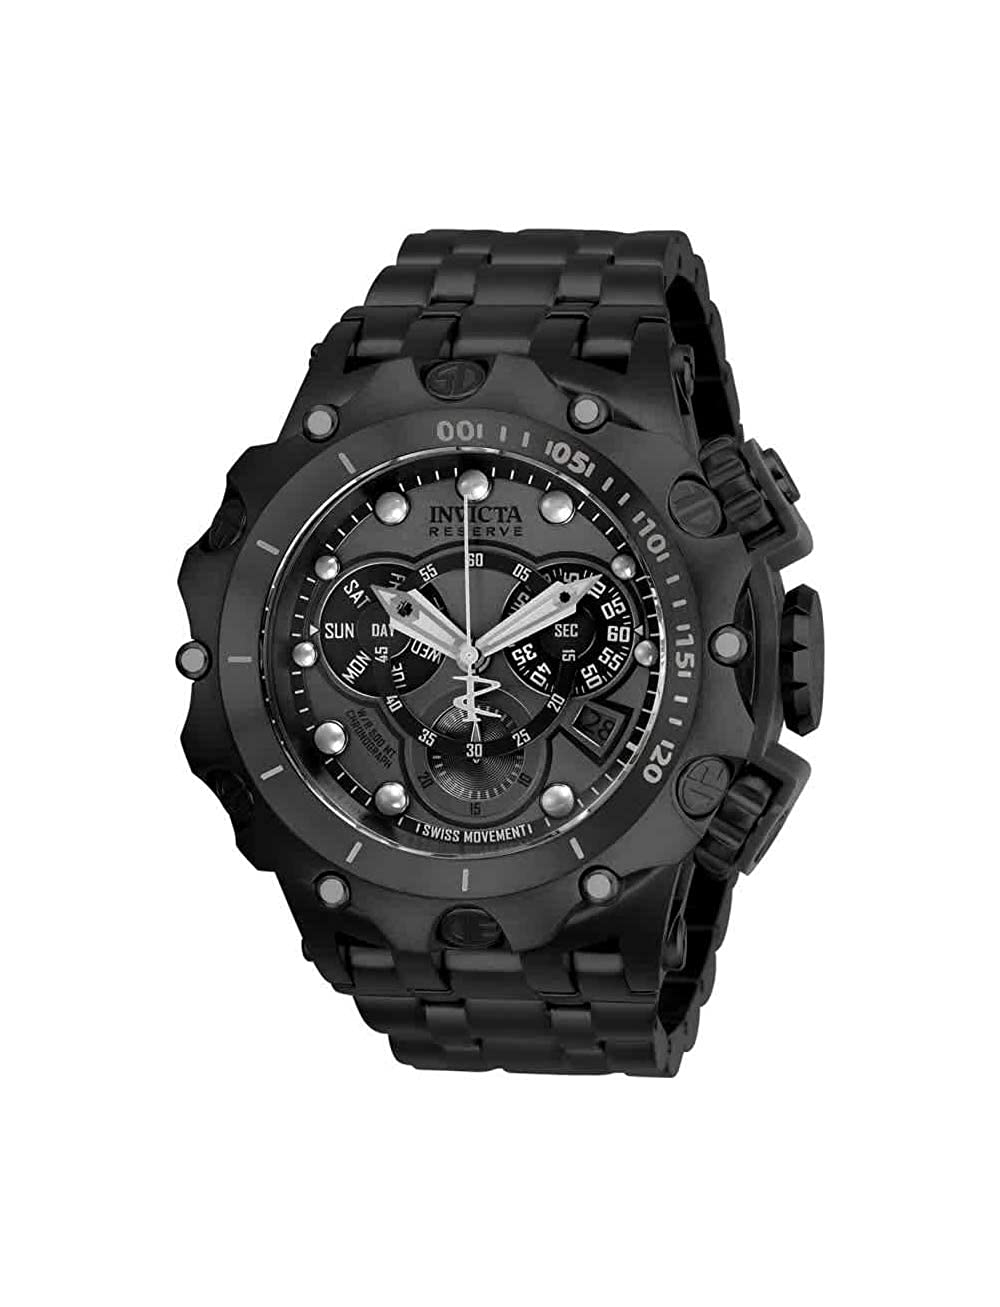 8f2f9e40fec Amazon.com: Invicta Reserve Men's 52mm Venom Hybrid Swiss Quartz  Chronograph Stainless Steel Bracelet Watch [Model: 27795]: Invicta: Watches